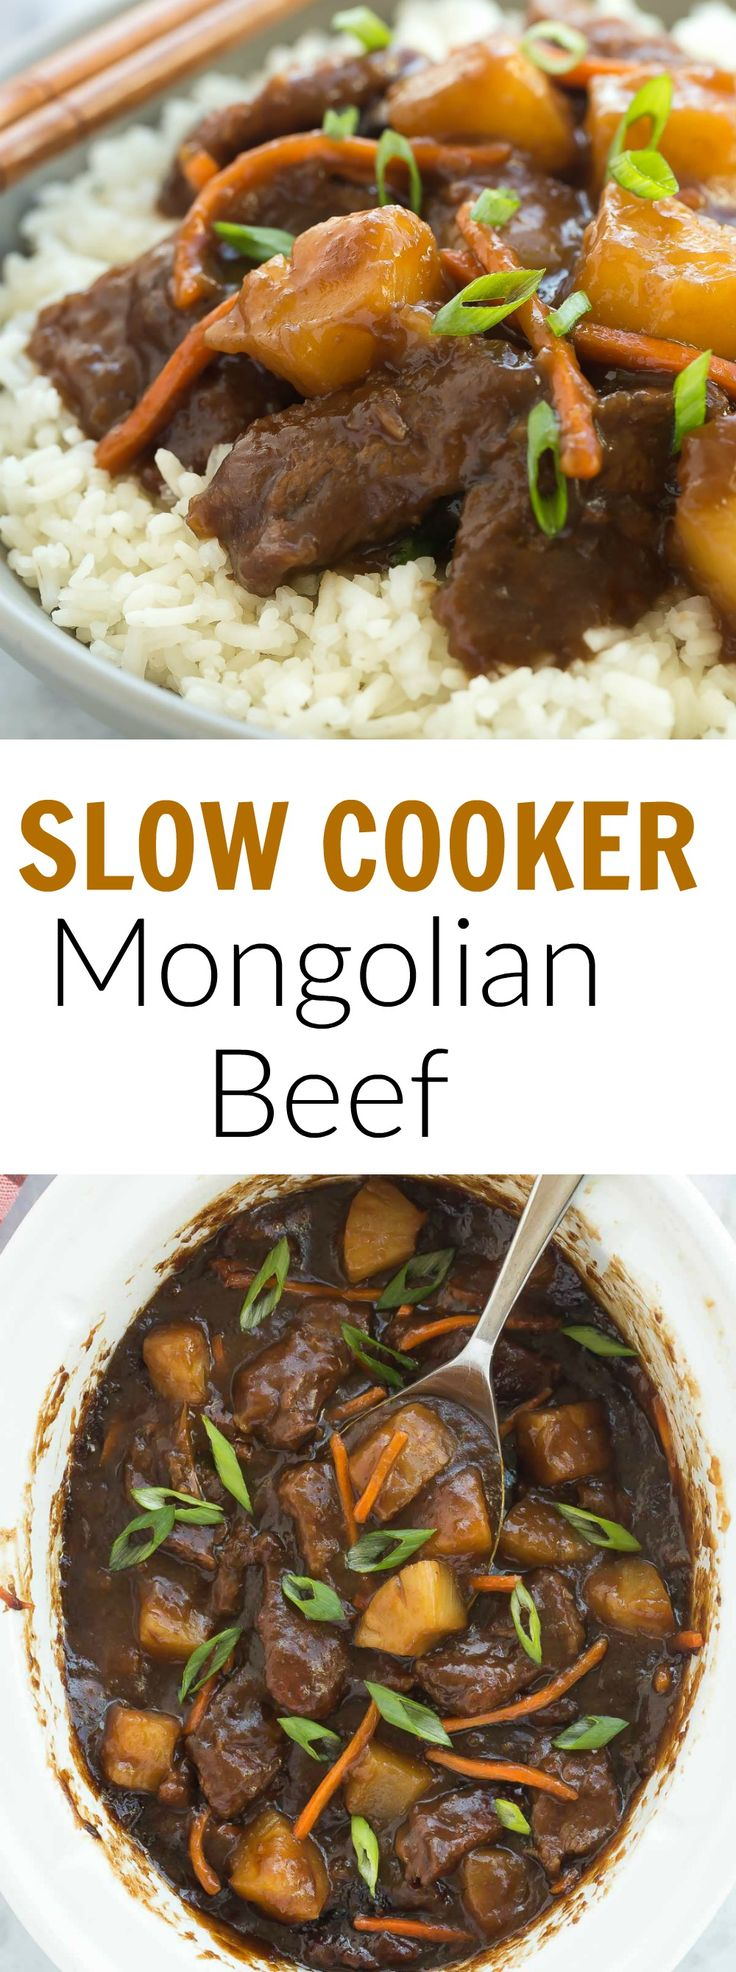 This Slow Cooker Mongolian Beef is sweet, sticky and a little spicy ...